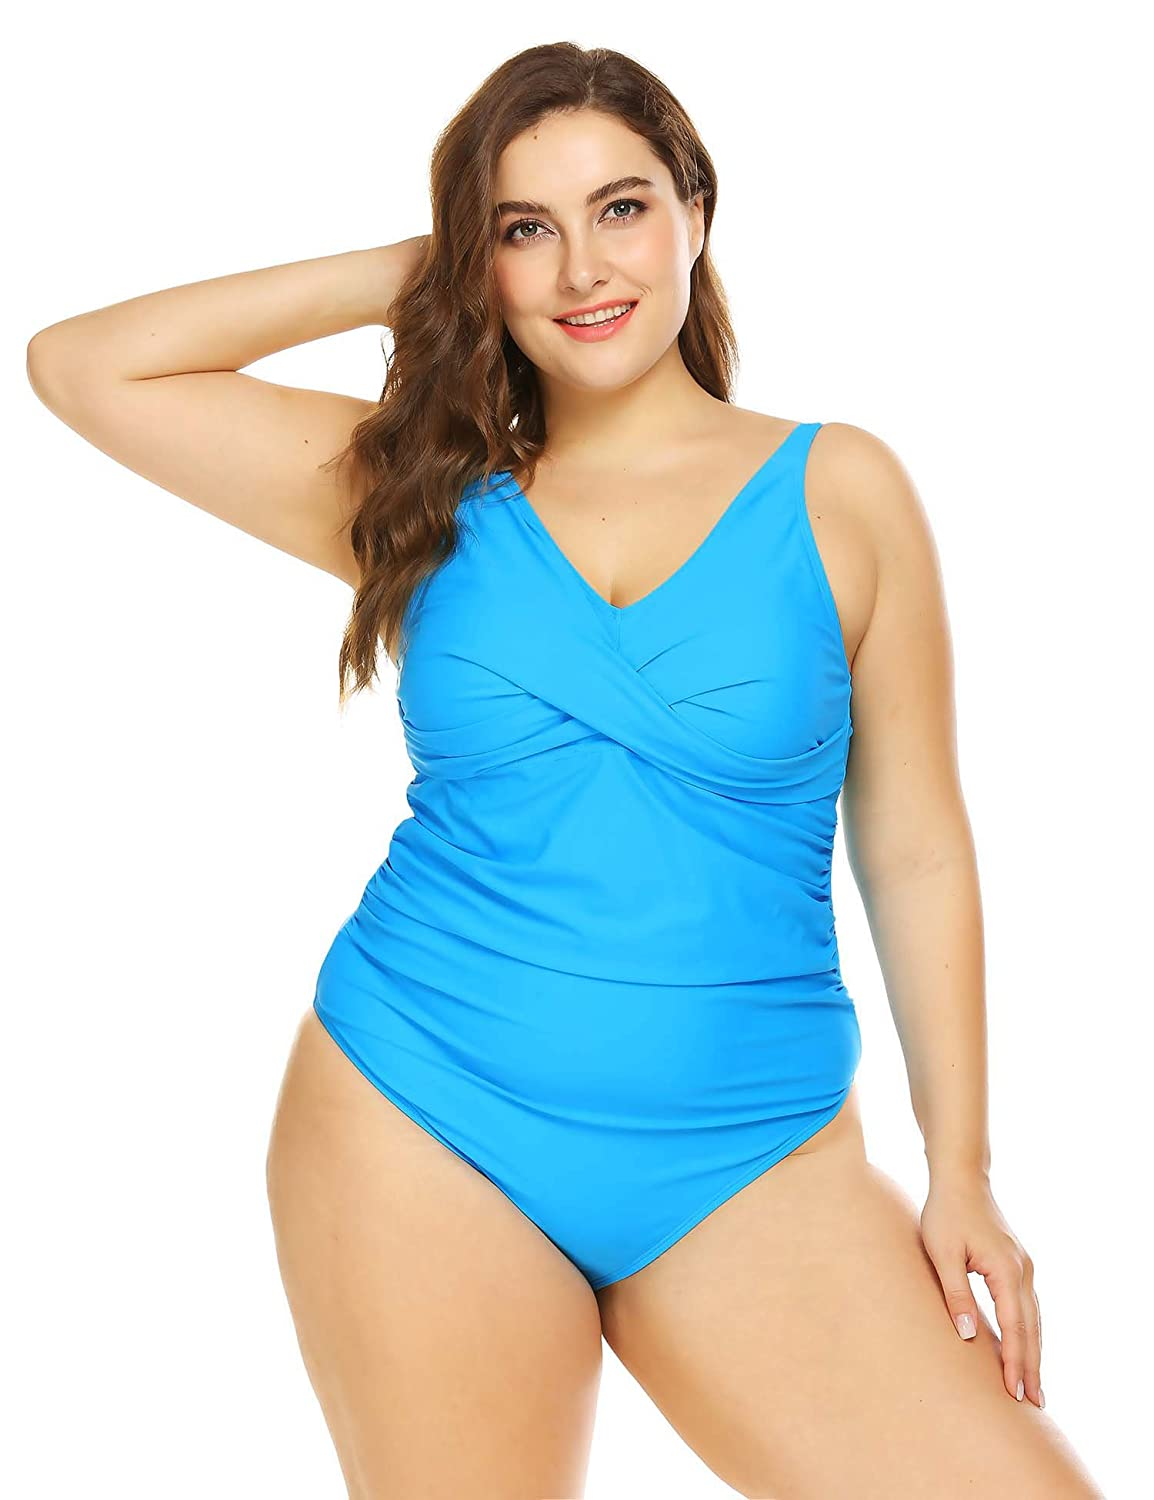 cb4aeff2a4c IN'VOLAND Womens Plus Size Swimwear One Piece Swimsuits Tummy Control V  Neck Bathing Suits Monokini at Amazon Women's Clothing store: